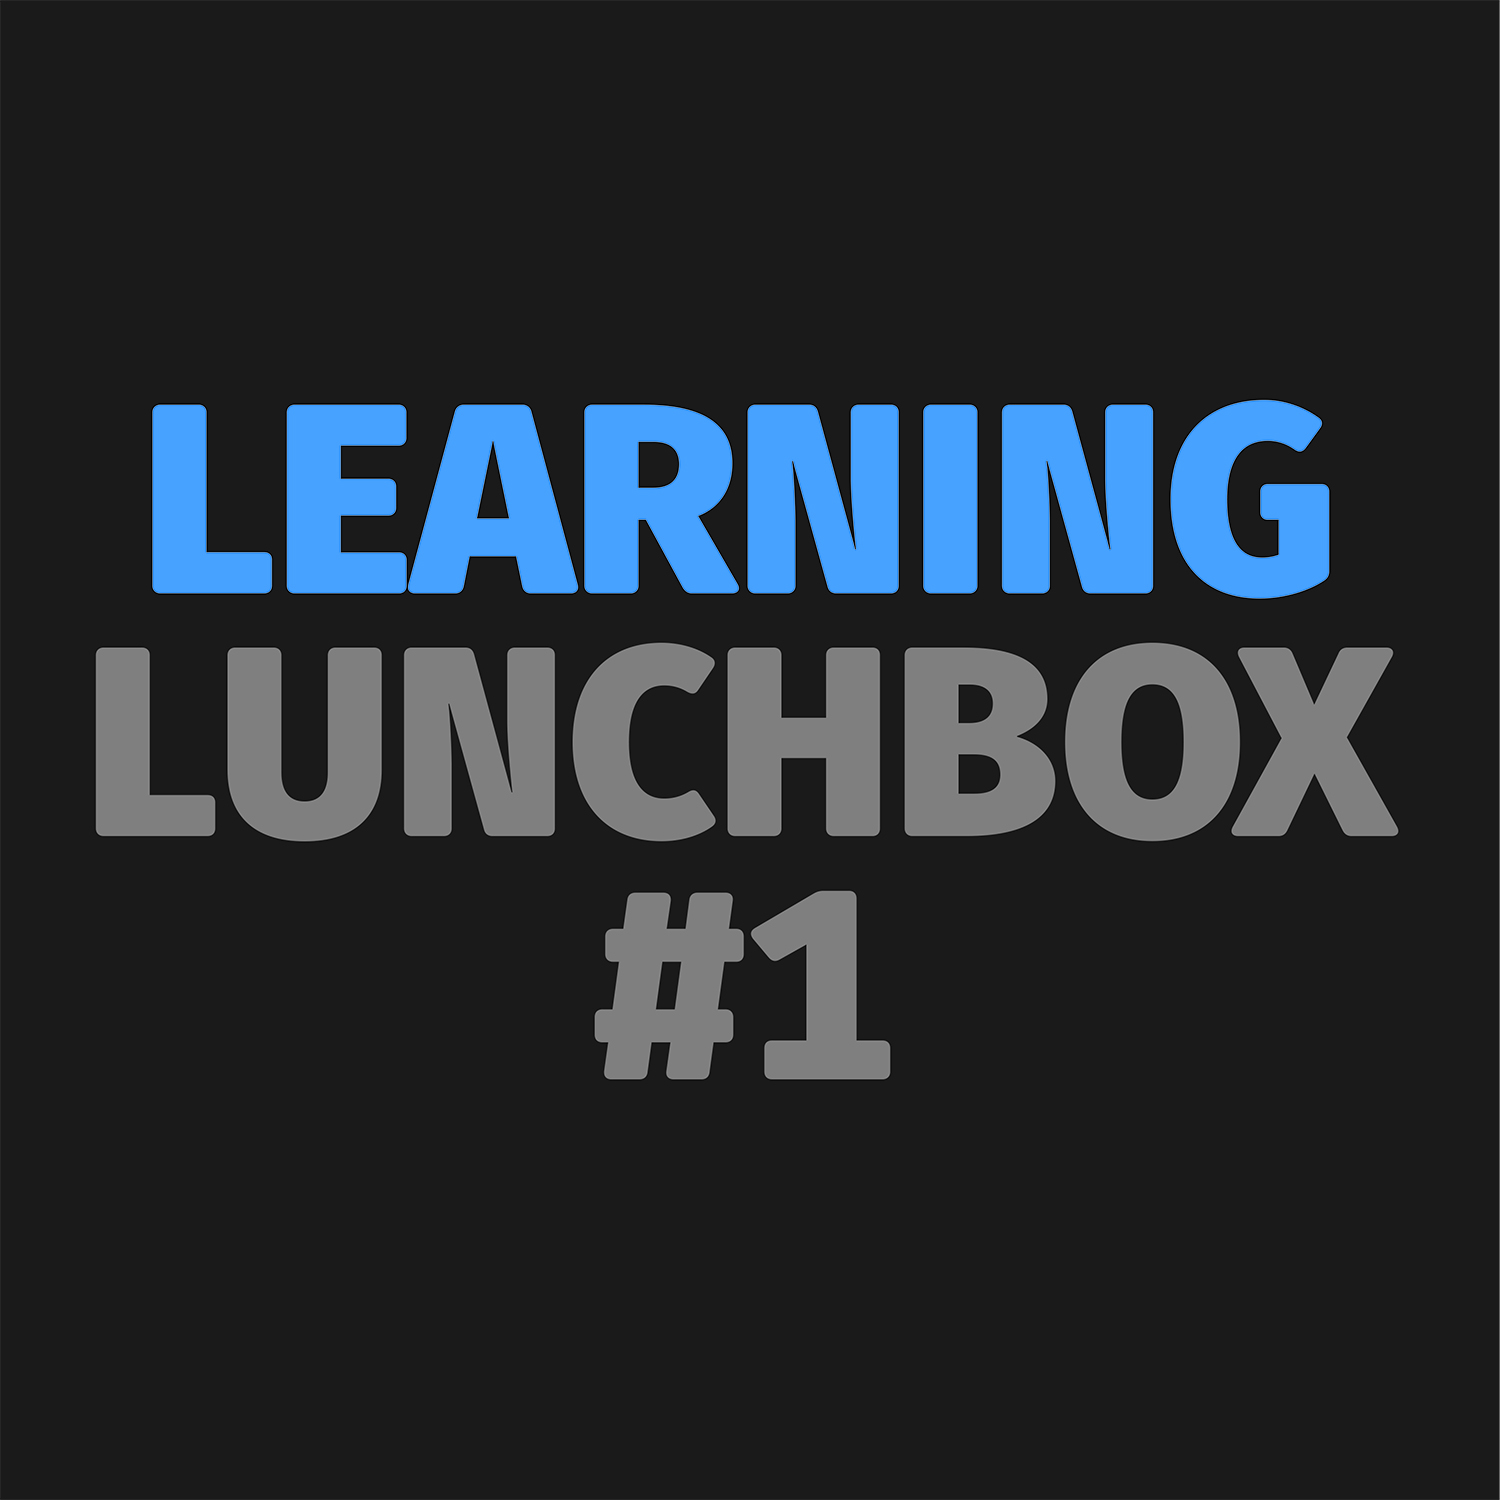 Learning Lunchbox #1